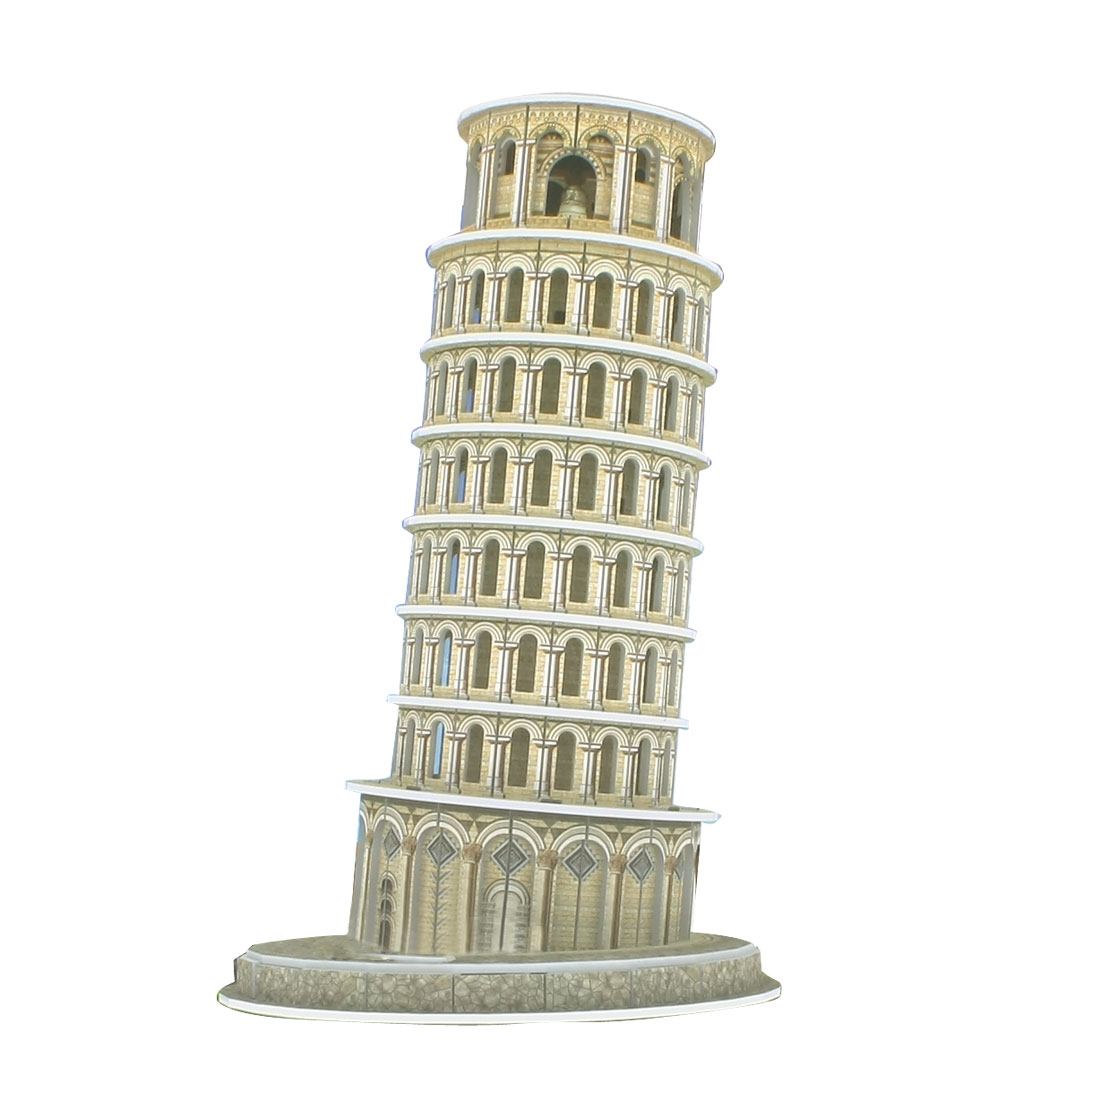 Bronze Tone Paper Foam Leaning Tower of Pisa Puzzle Toy for Children